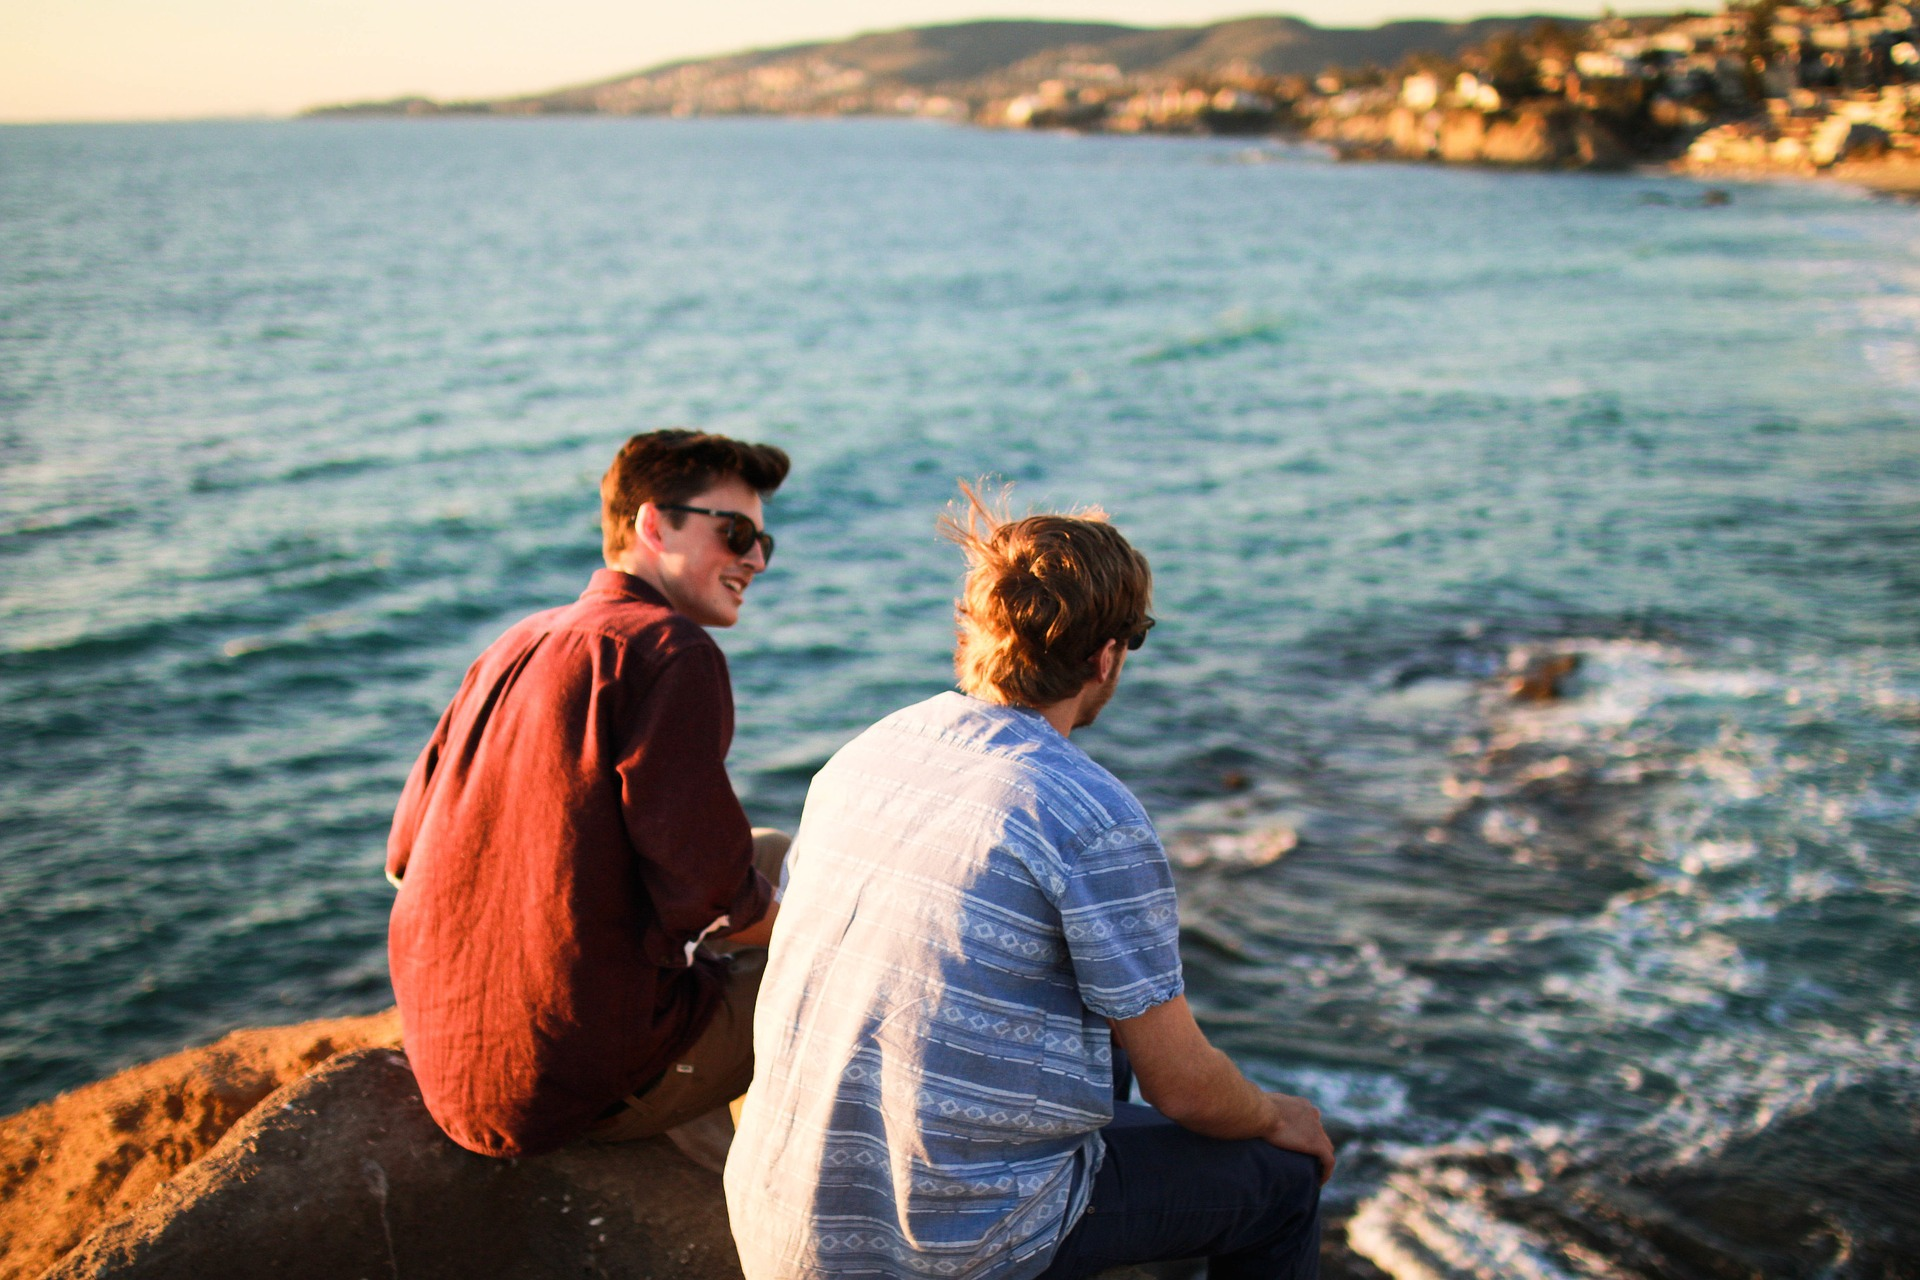 Two young men talking while sitting on rock beside body of water